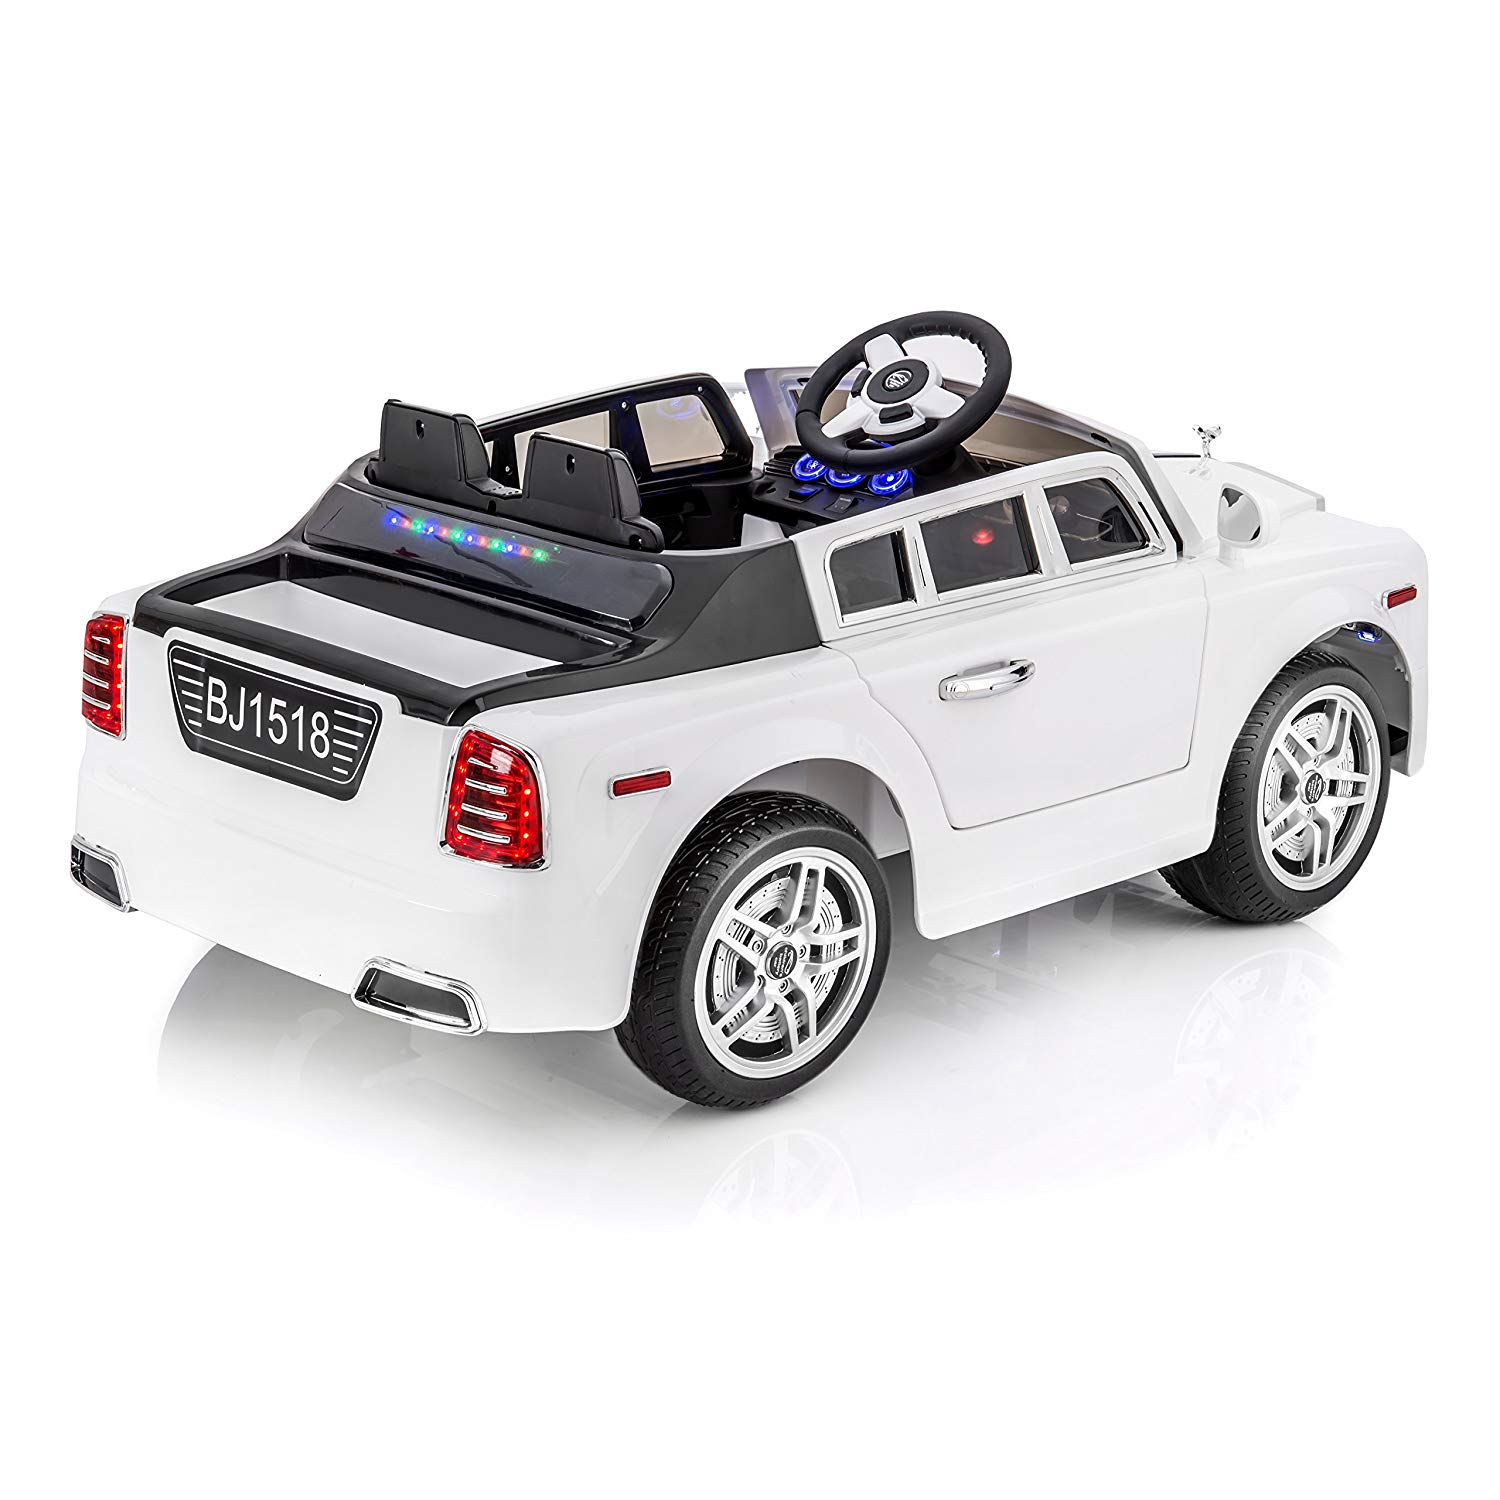 sportrax ghost luxury kid s ride on car battery powered remote control w free mp3 player white toys games